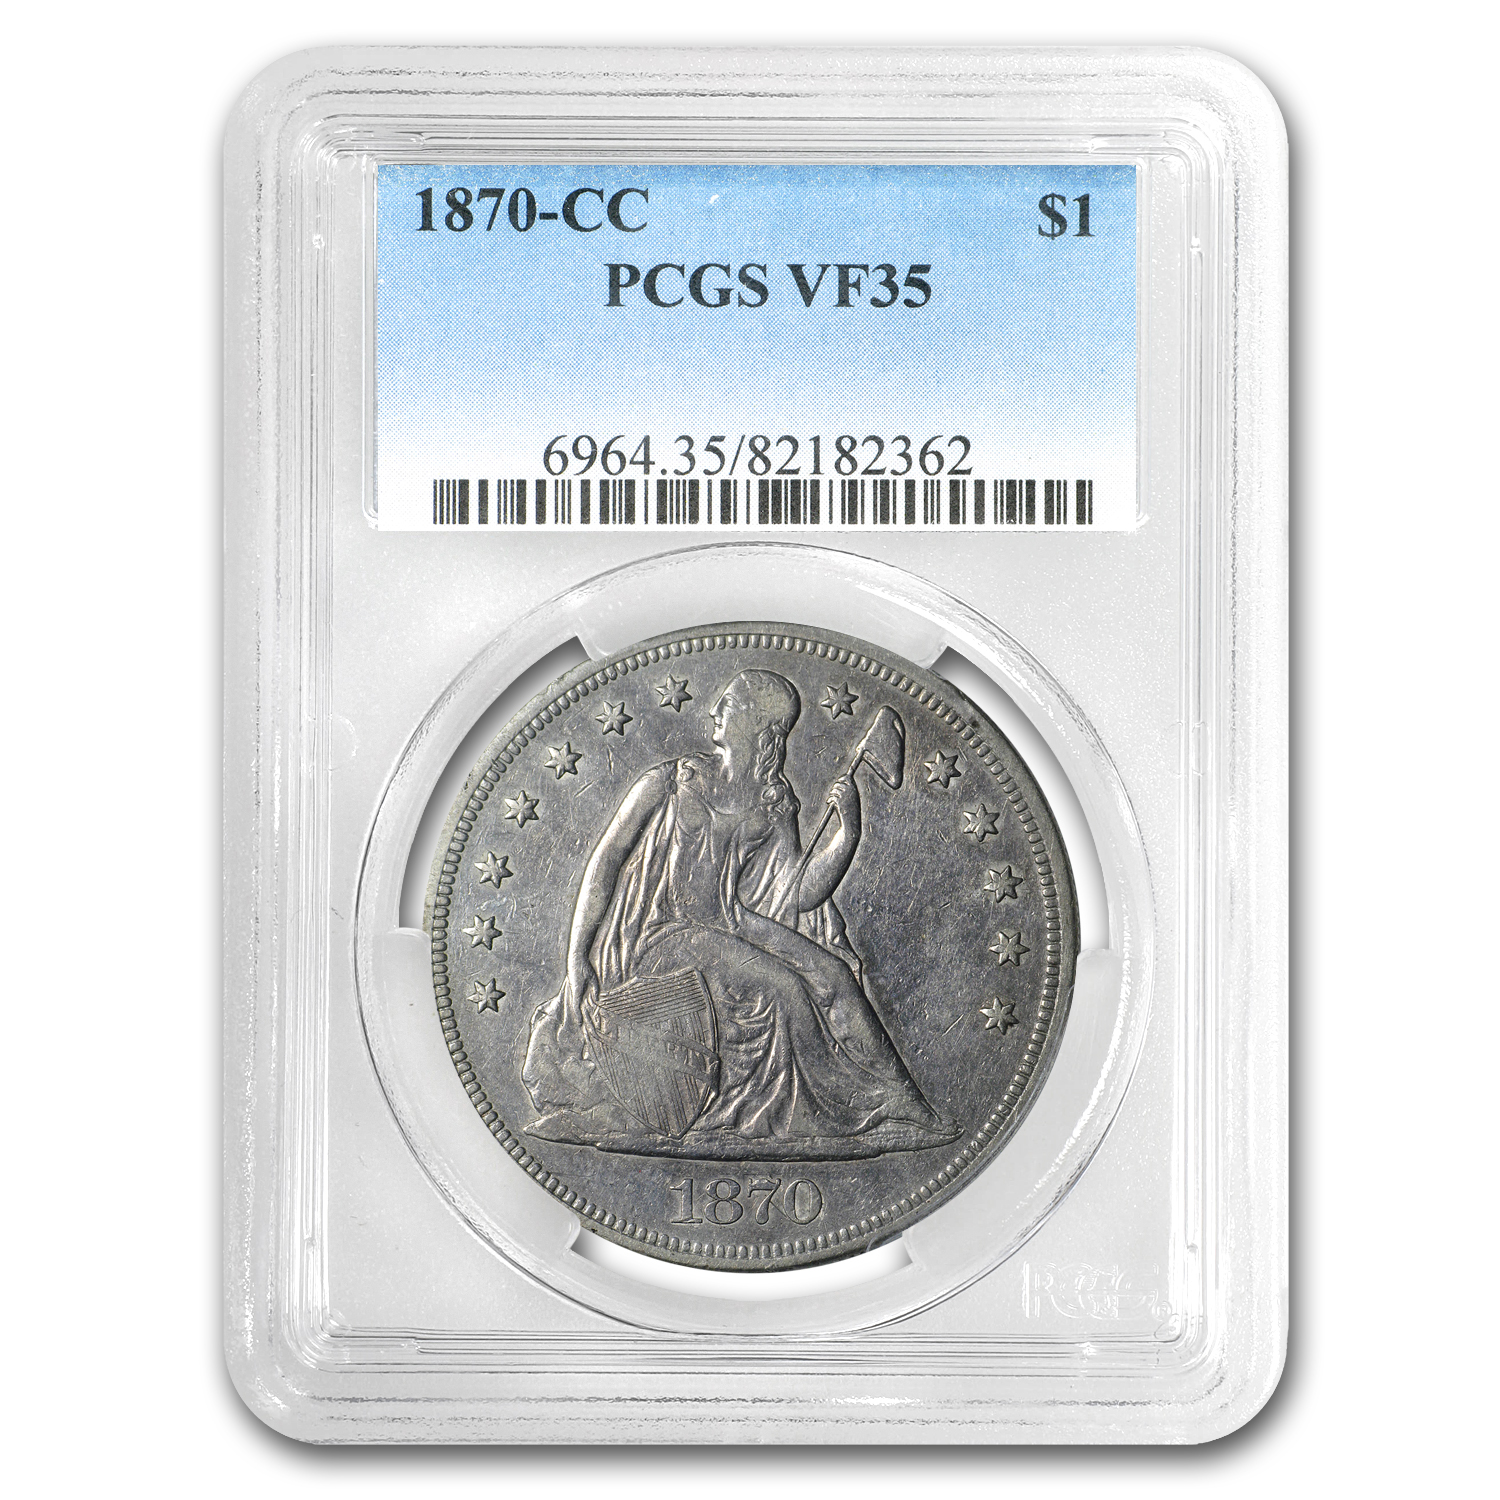 1870-CC Liberty Seated Dollar - Very Fine-35 PCGS - CAC